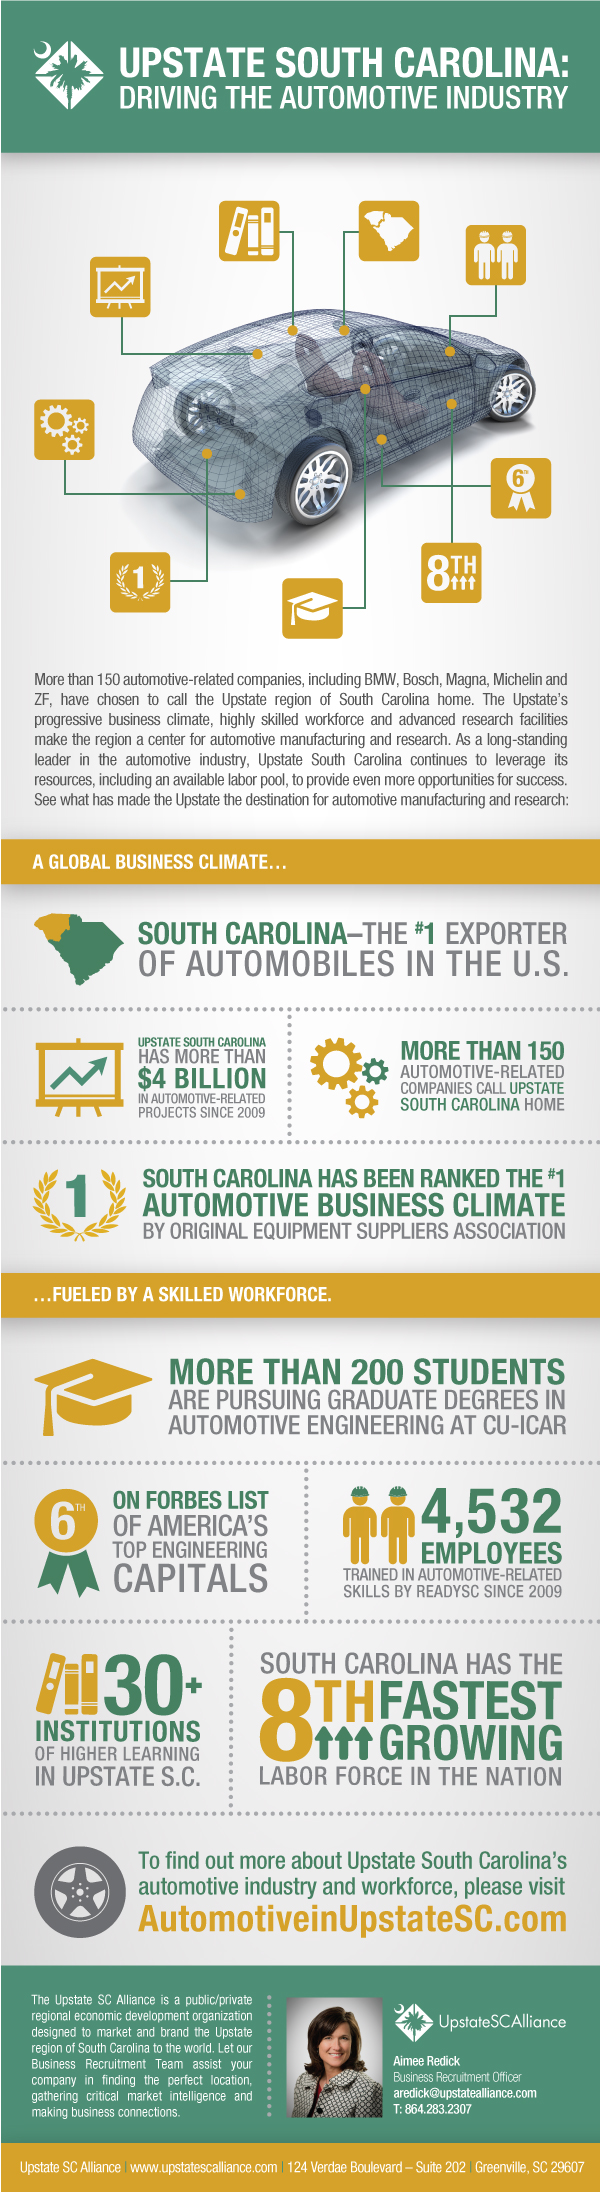 (Infographic)-What-Drives-the-Automotive-Industry-in-Upstate-S-C.jpg